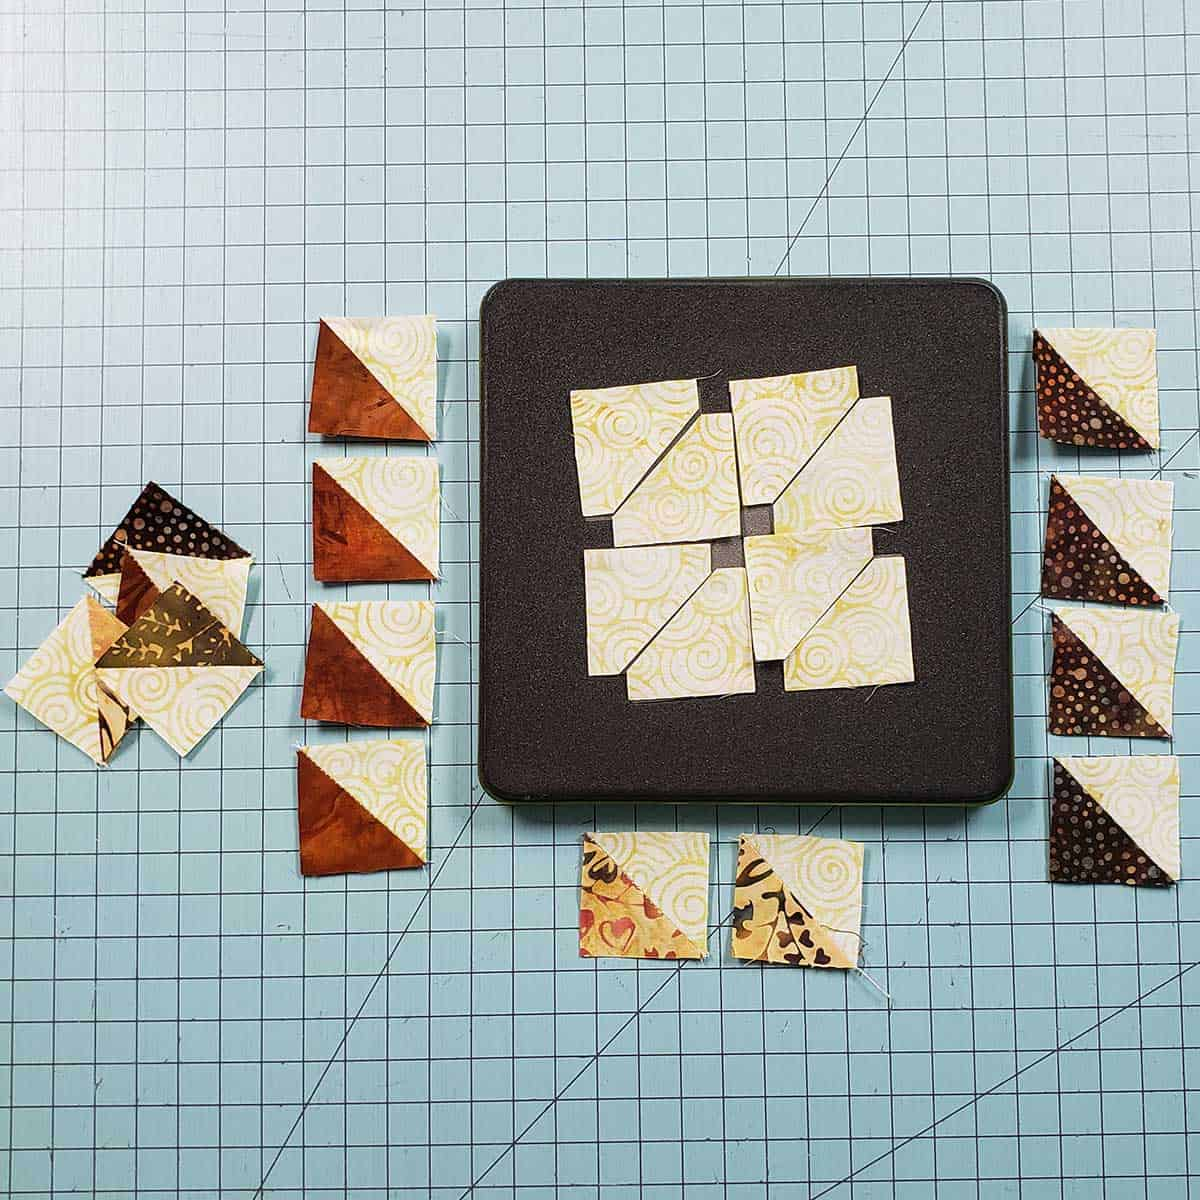 Qurtis half square triangles with AccuQuilt cutter